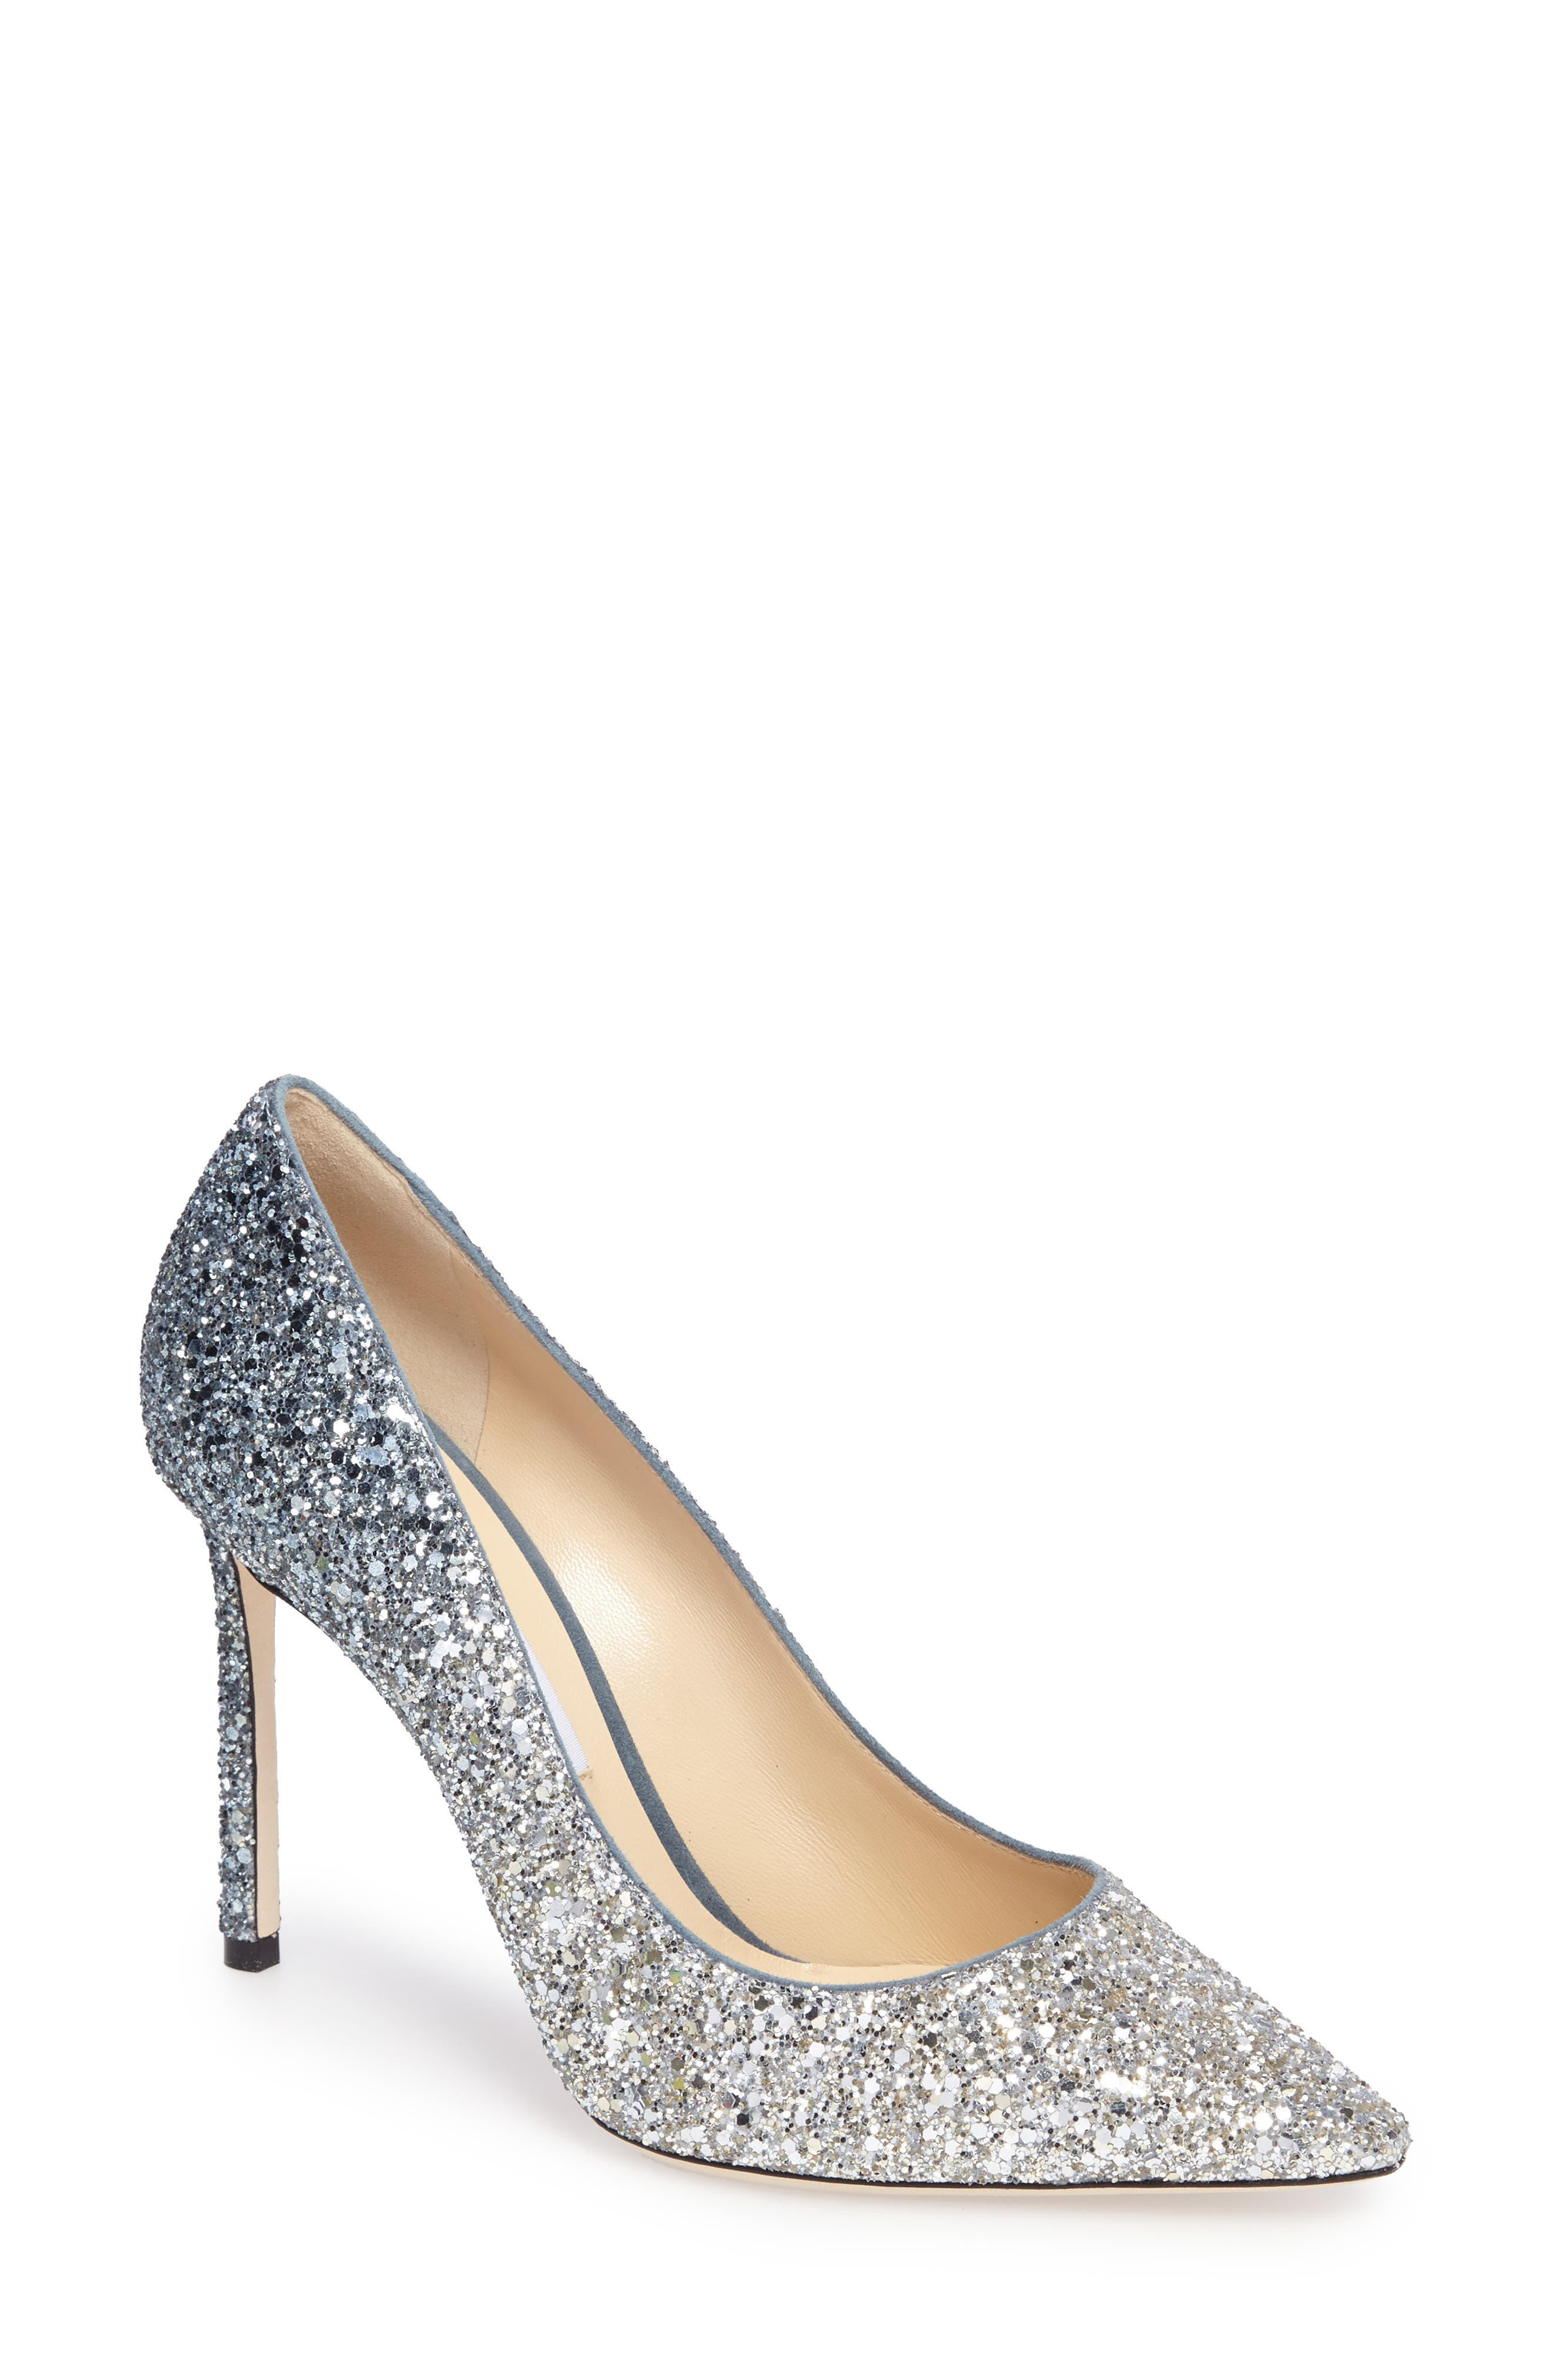 Romy Glitter Pump,                         Main,                         color, Silver/ Dusk Blue